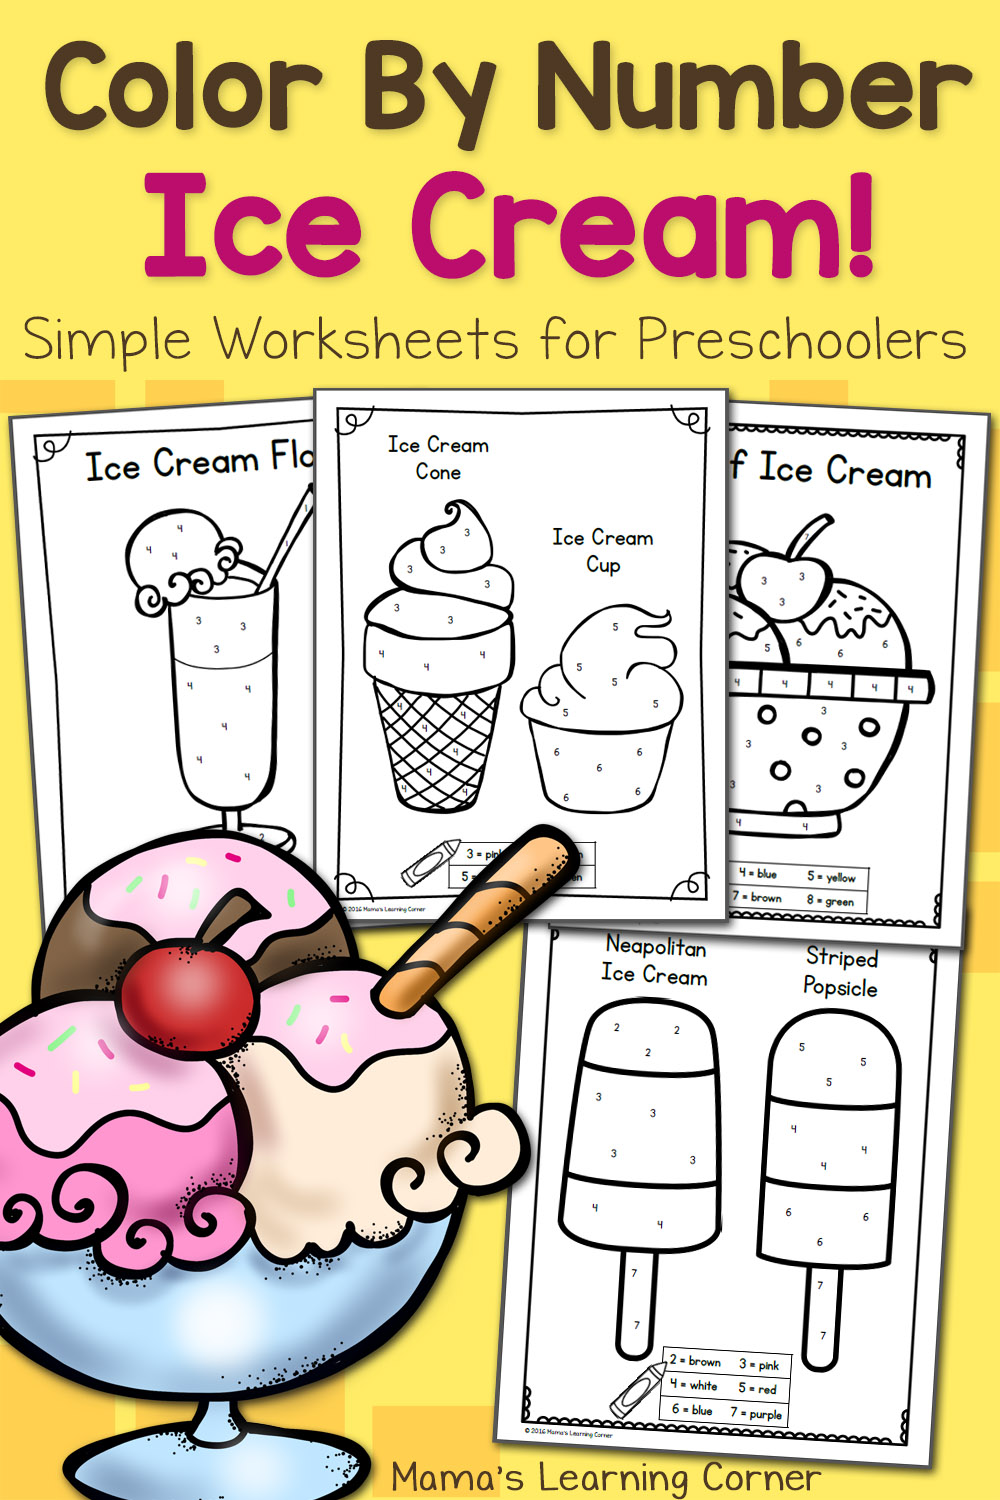 Color By Number Worksheets for Preschool: Ice Cream ... | colouring worksheets for kindergarten